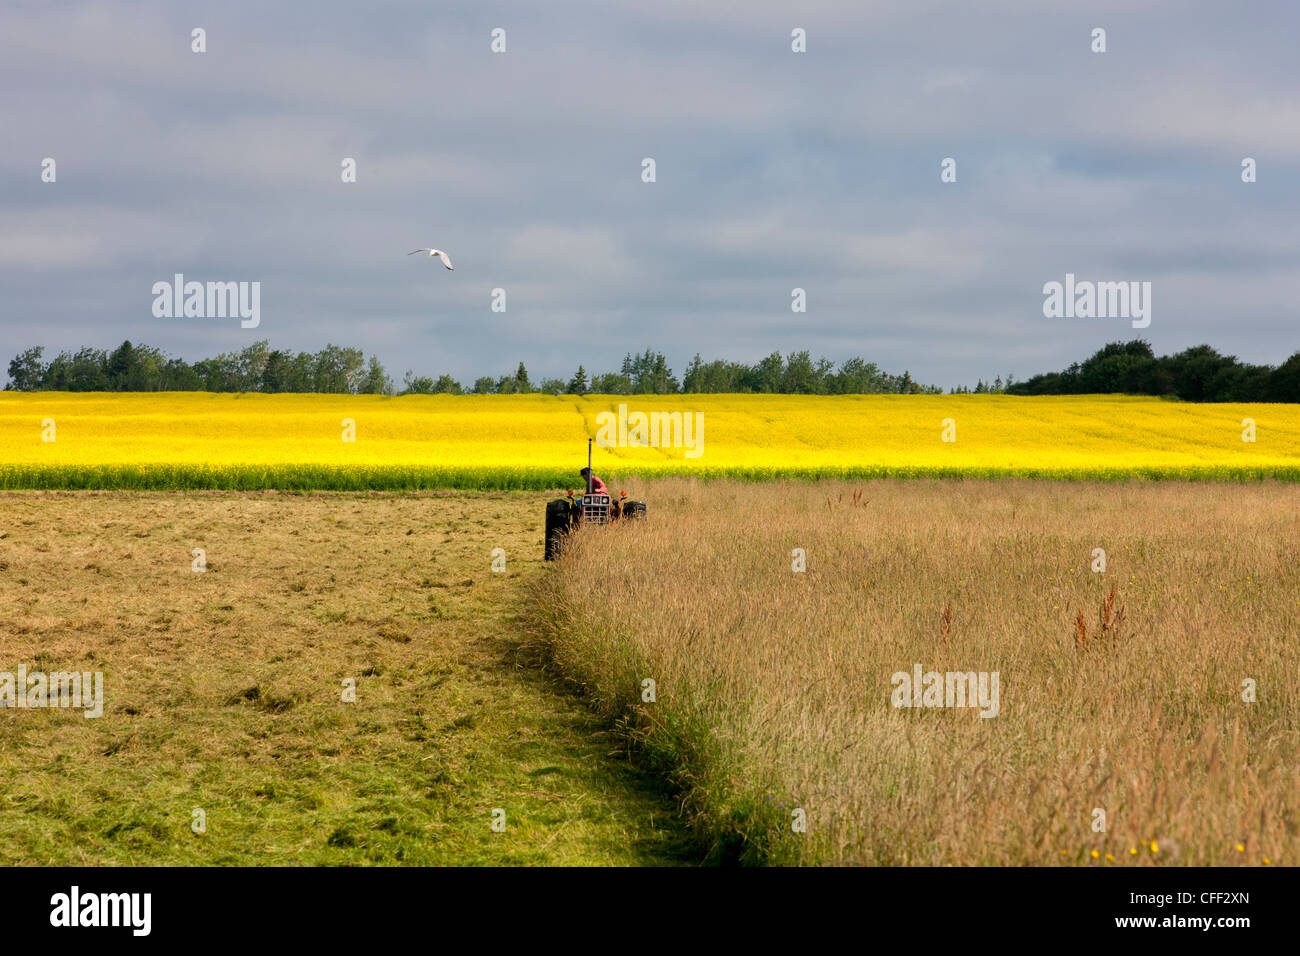 Farmer cutting hay in front of Canola Field in bloom, Guernsey Cove, Prince Edward Island, Canada - Stock Image